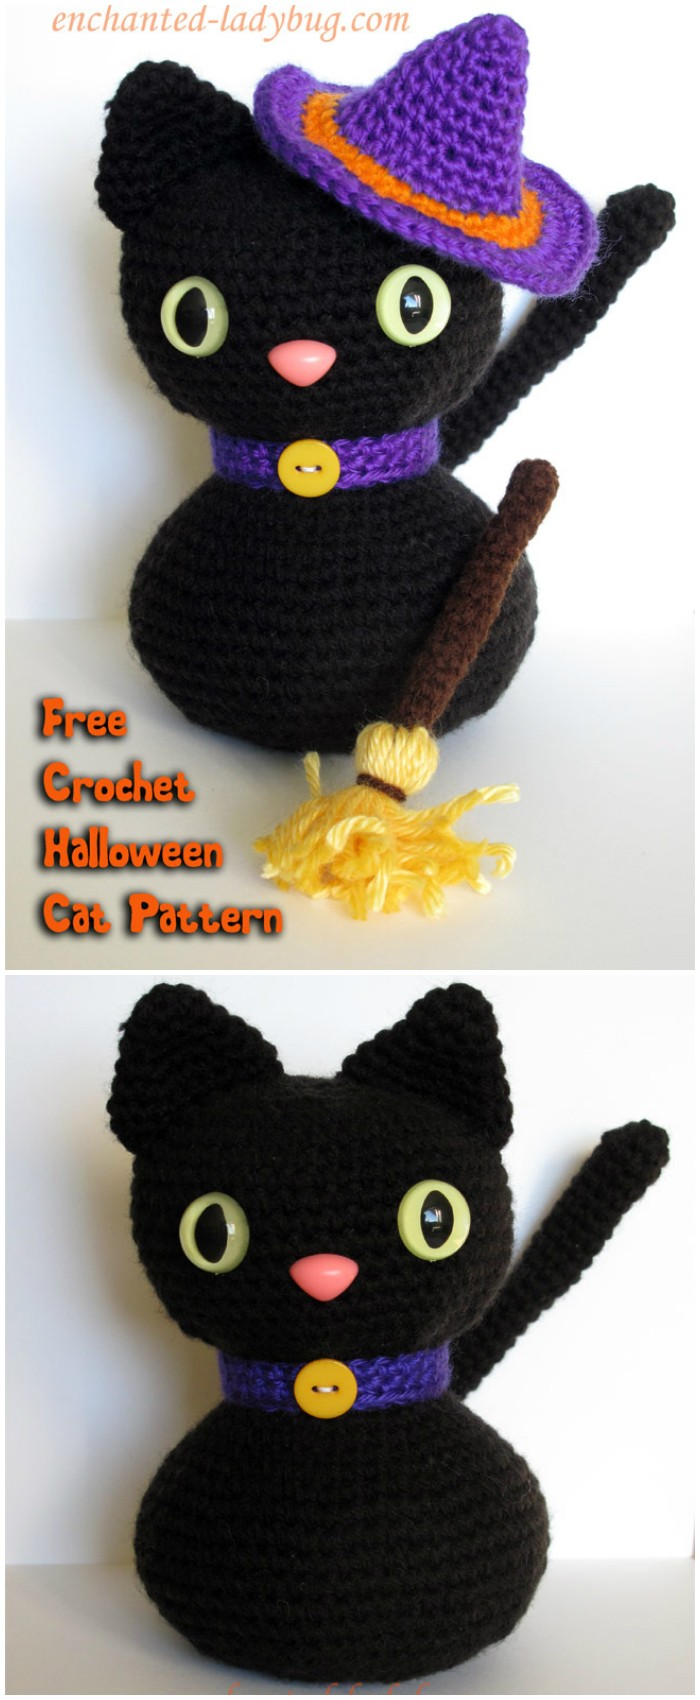 Free Crochet Amigurumi Halloween Black Cat